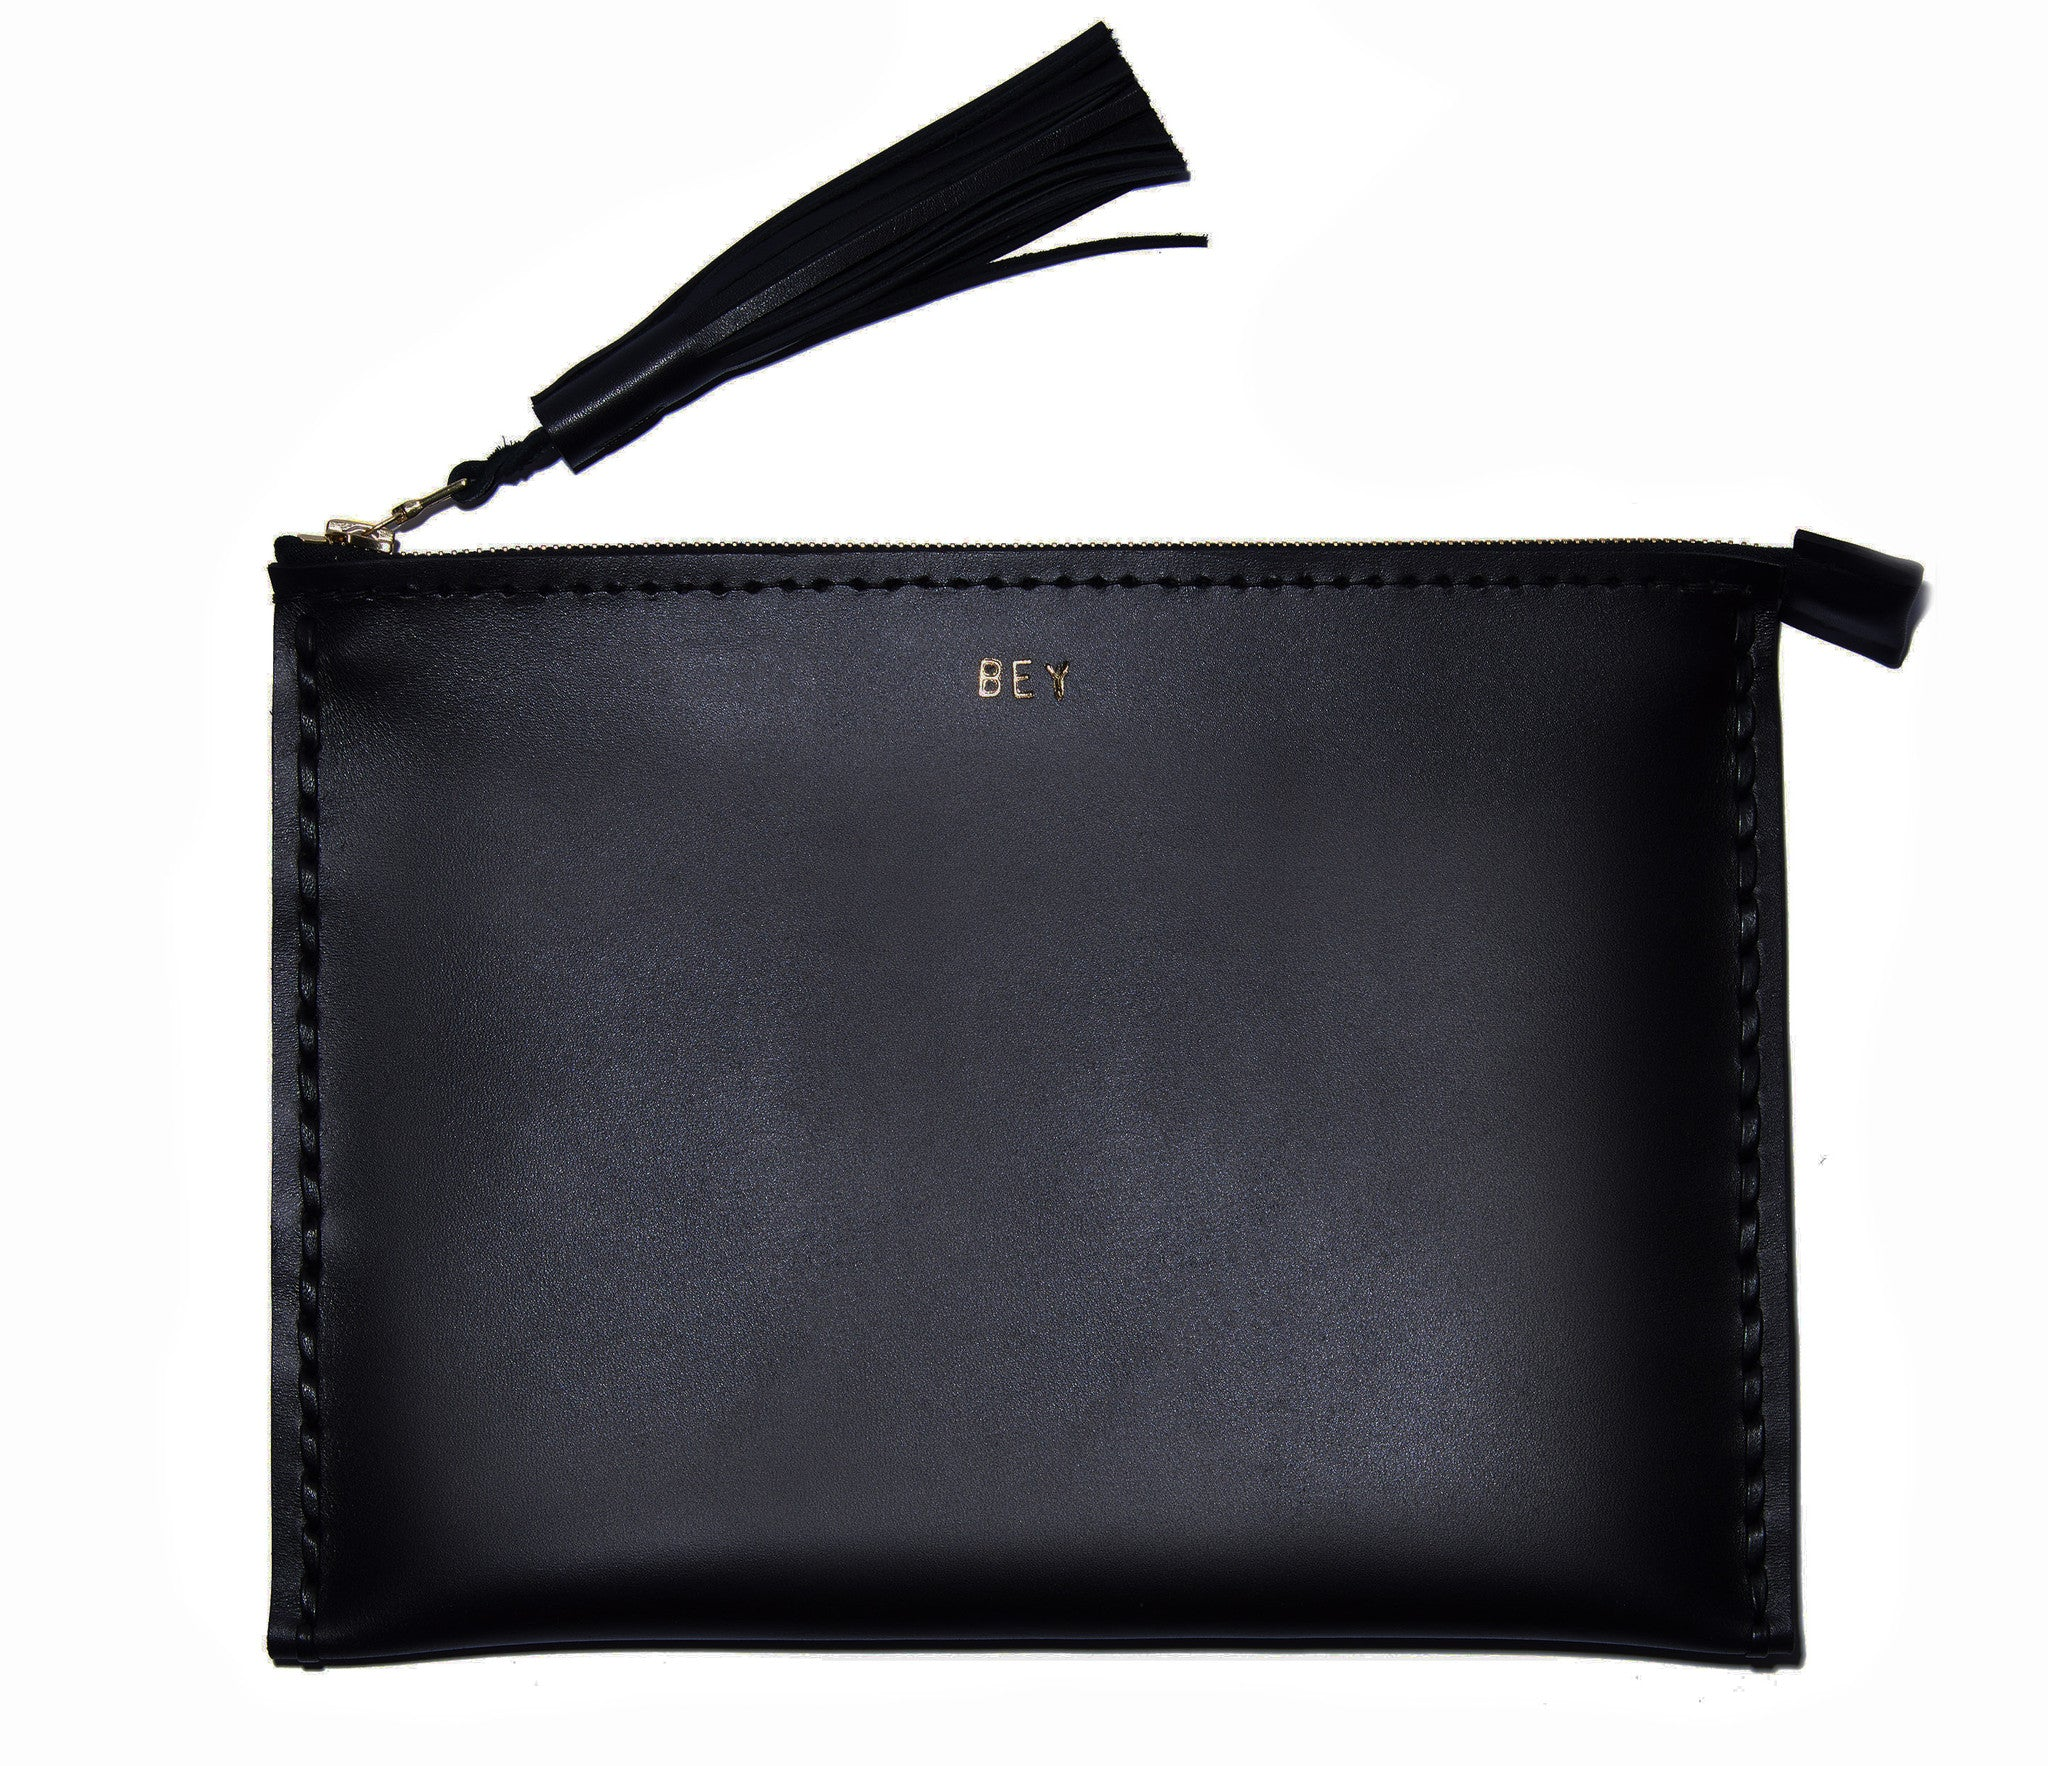 Leather Large Laced Clutch Pouch Custom Embossed Monogram wallet Wendy Nichol handbags Handmade in NYC